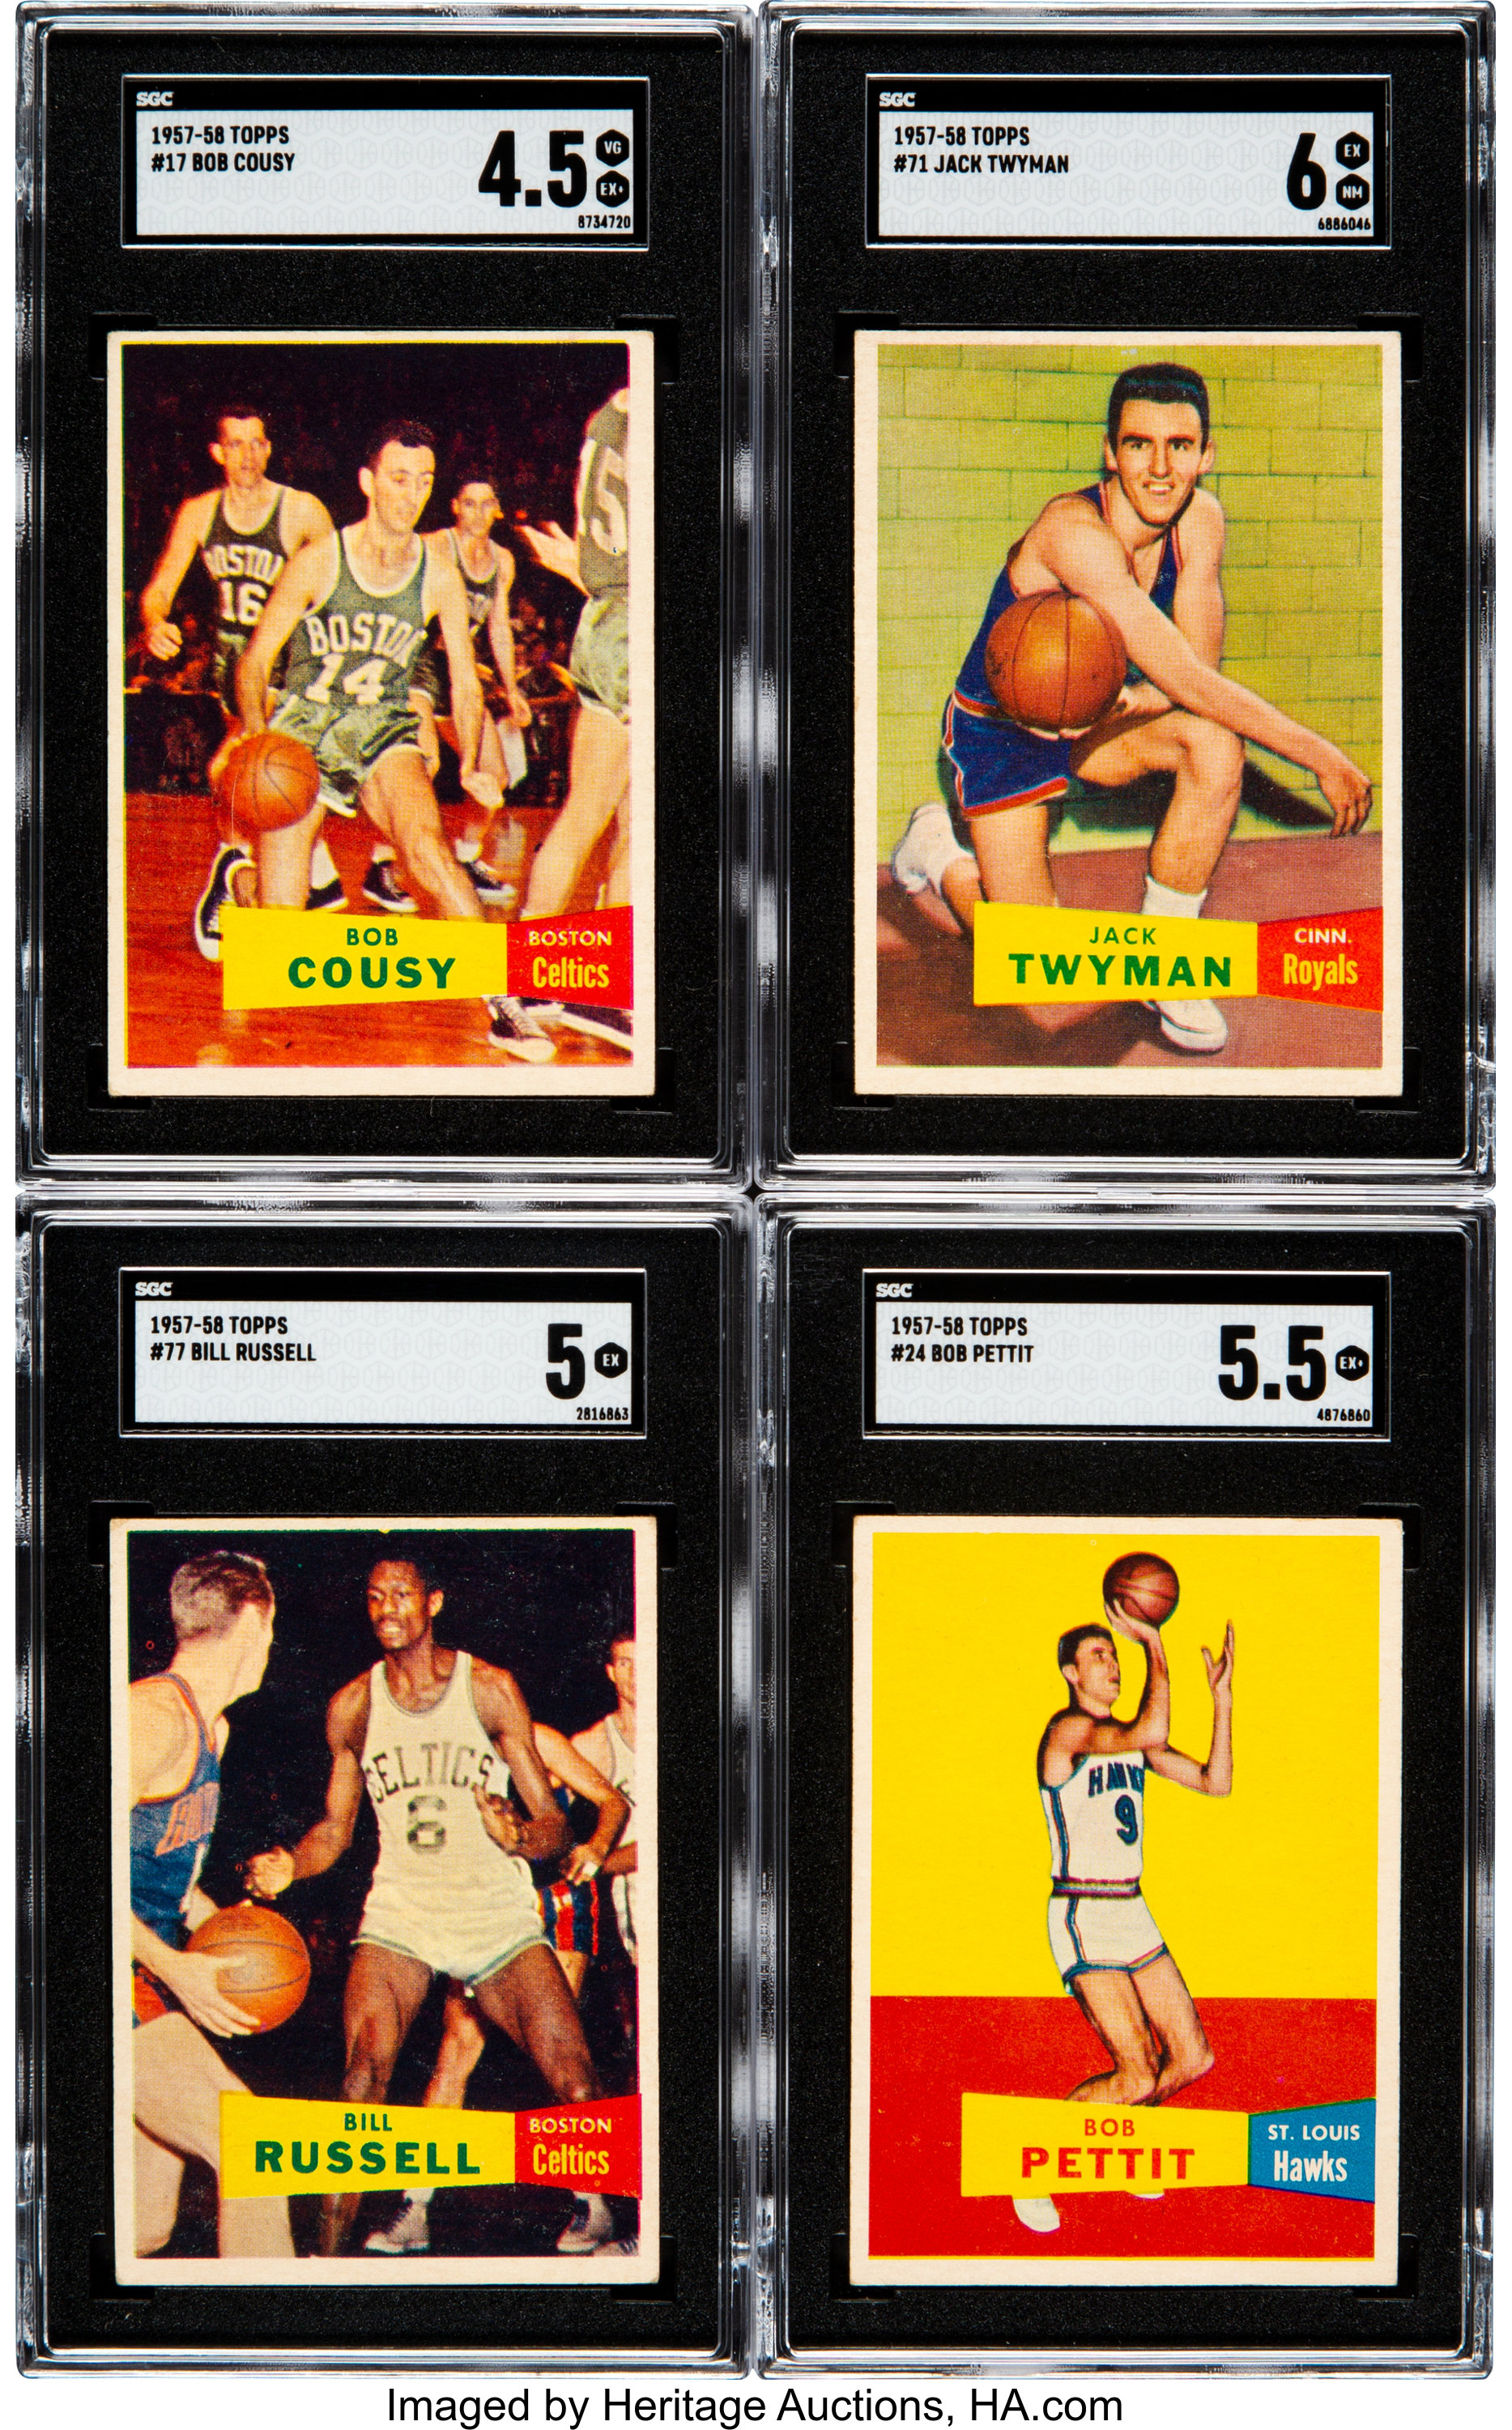 1957 Topps Basketball Partial Set 24 With Pettit Cousey Lot